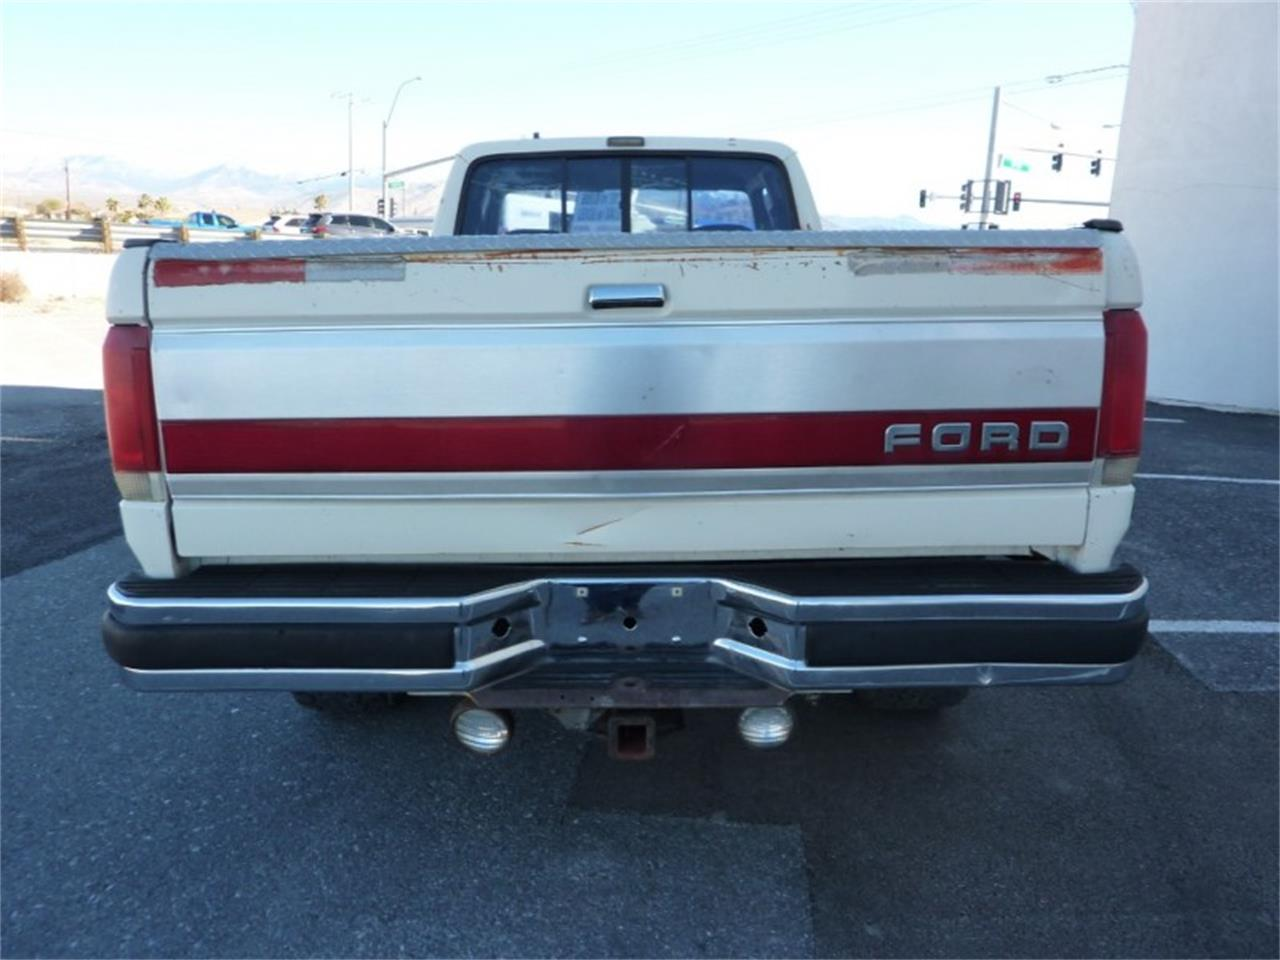 1989 Ford 3/4 Ton Pickup for sale in Pahrump, NV – photo 16